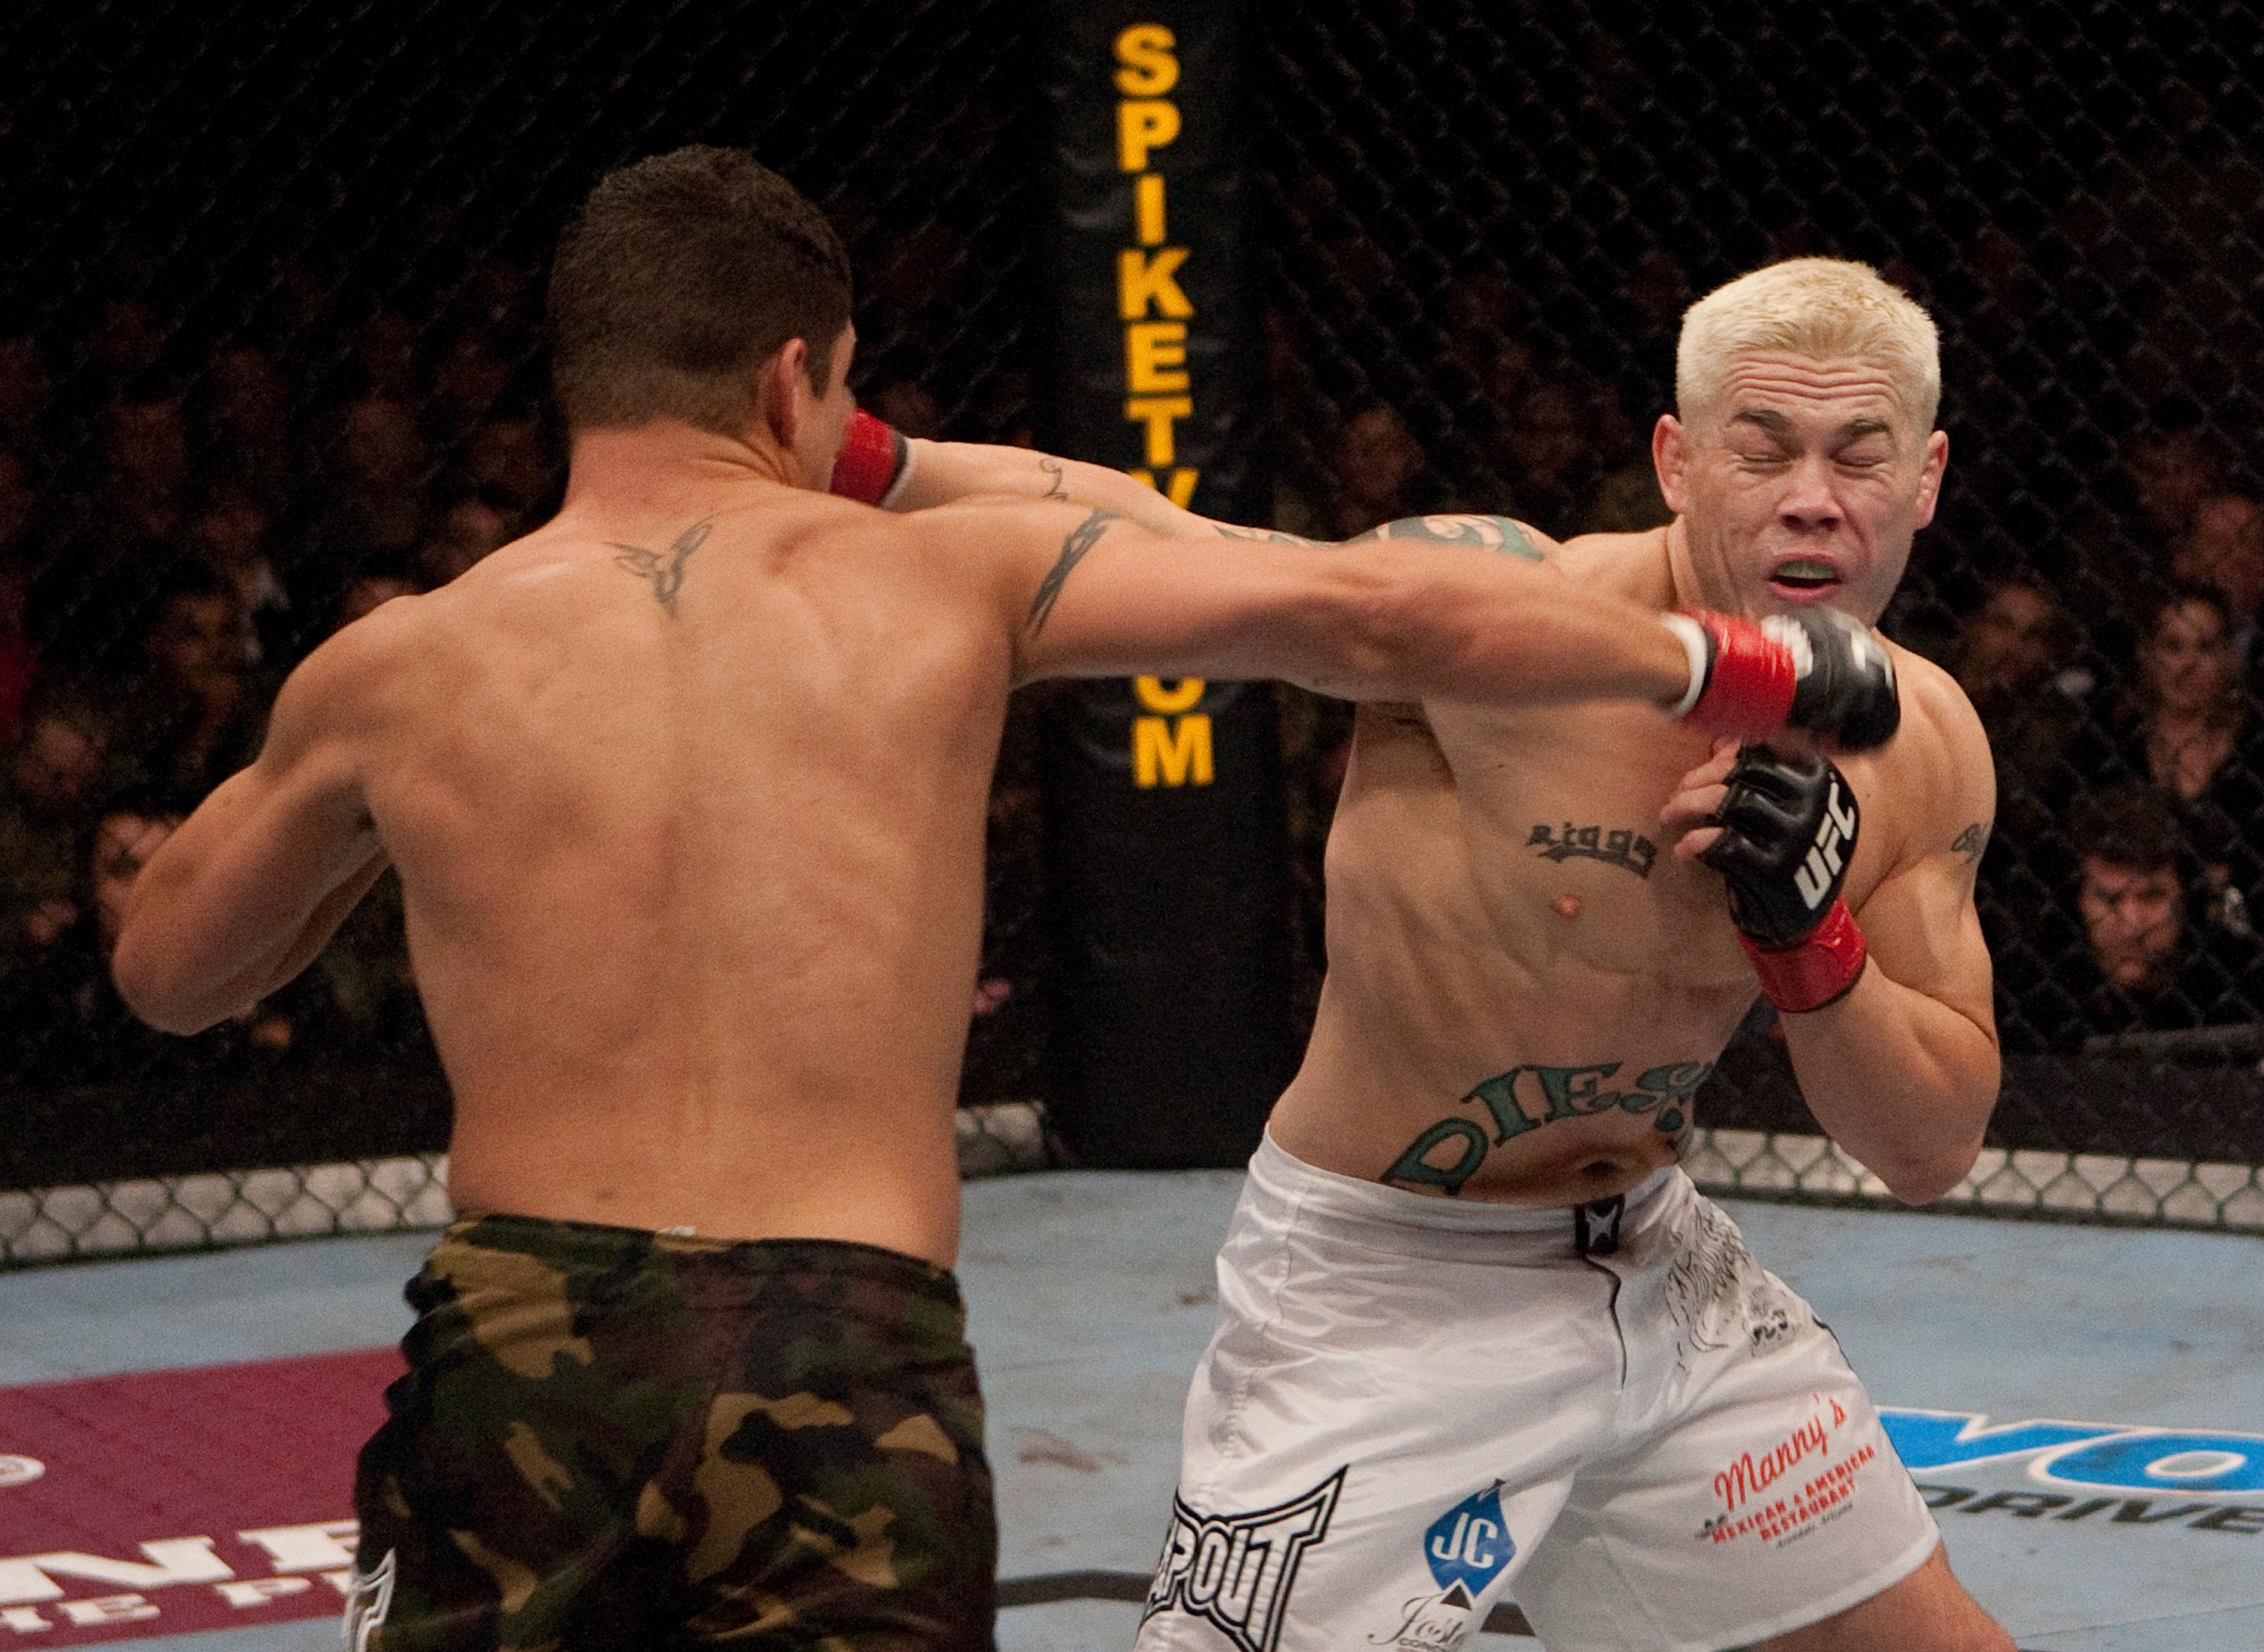 Diego Sanchez delivers a performance to remember against Joe Riggs in their 2006 fight.